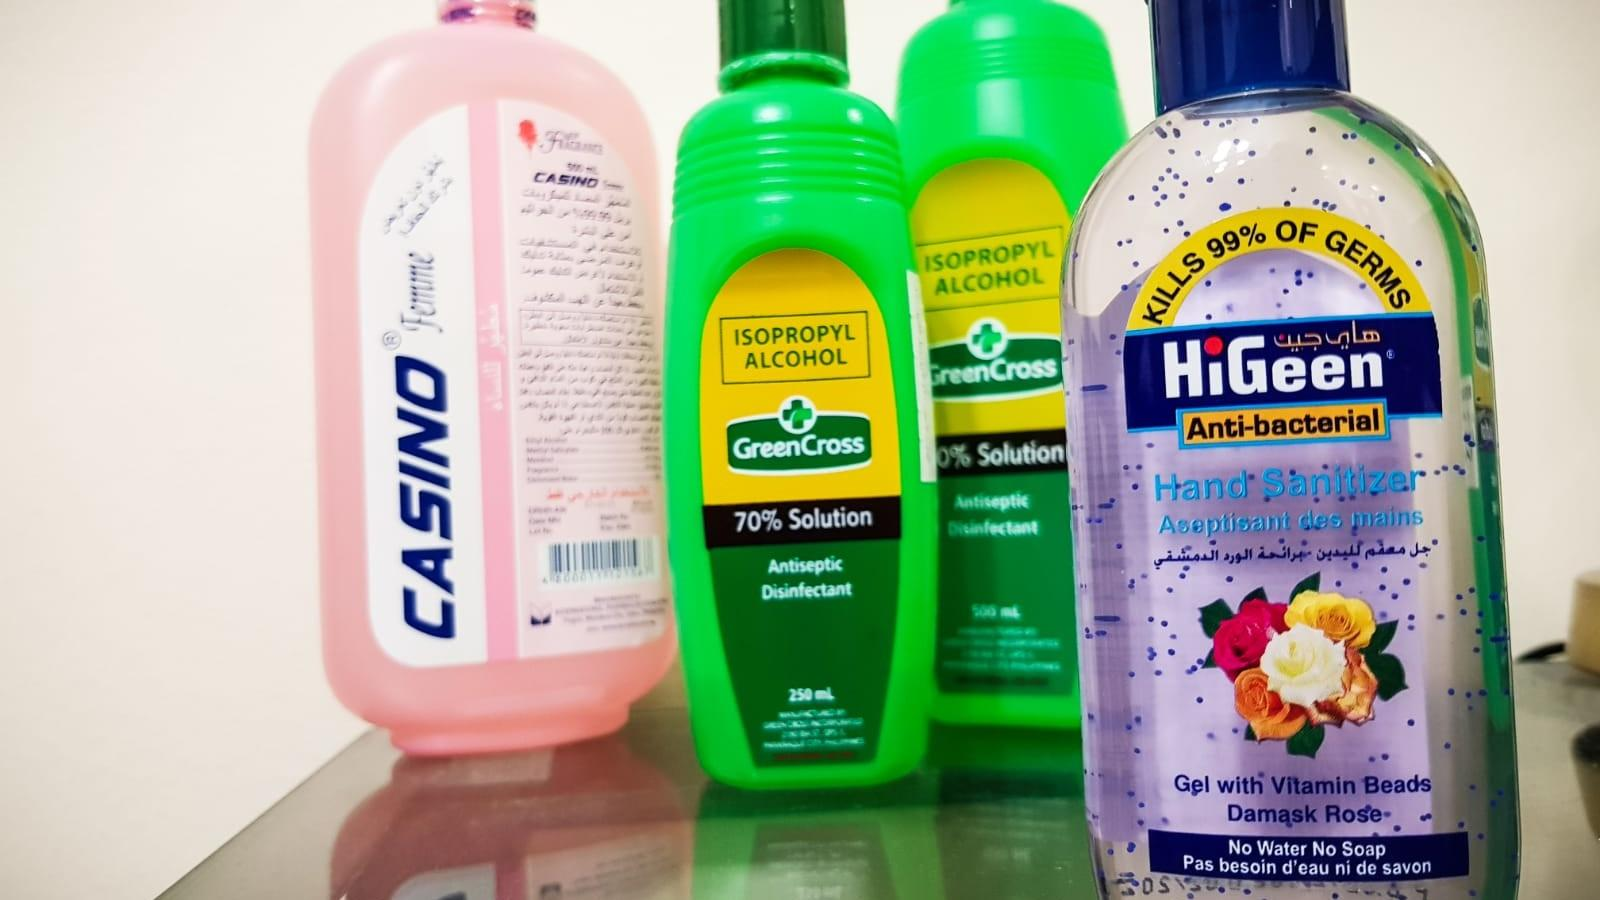 MoCI takes measures to control prices of hand sanitizers, wipes, and soaps